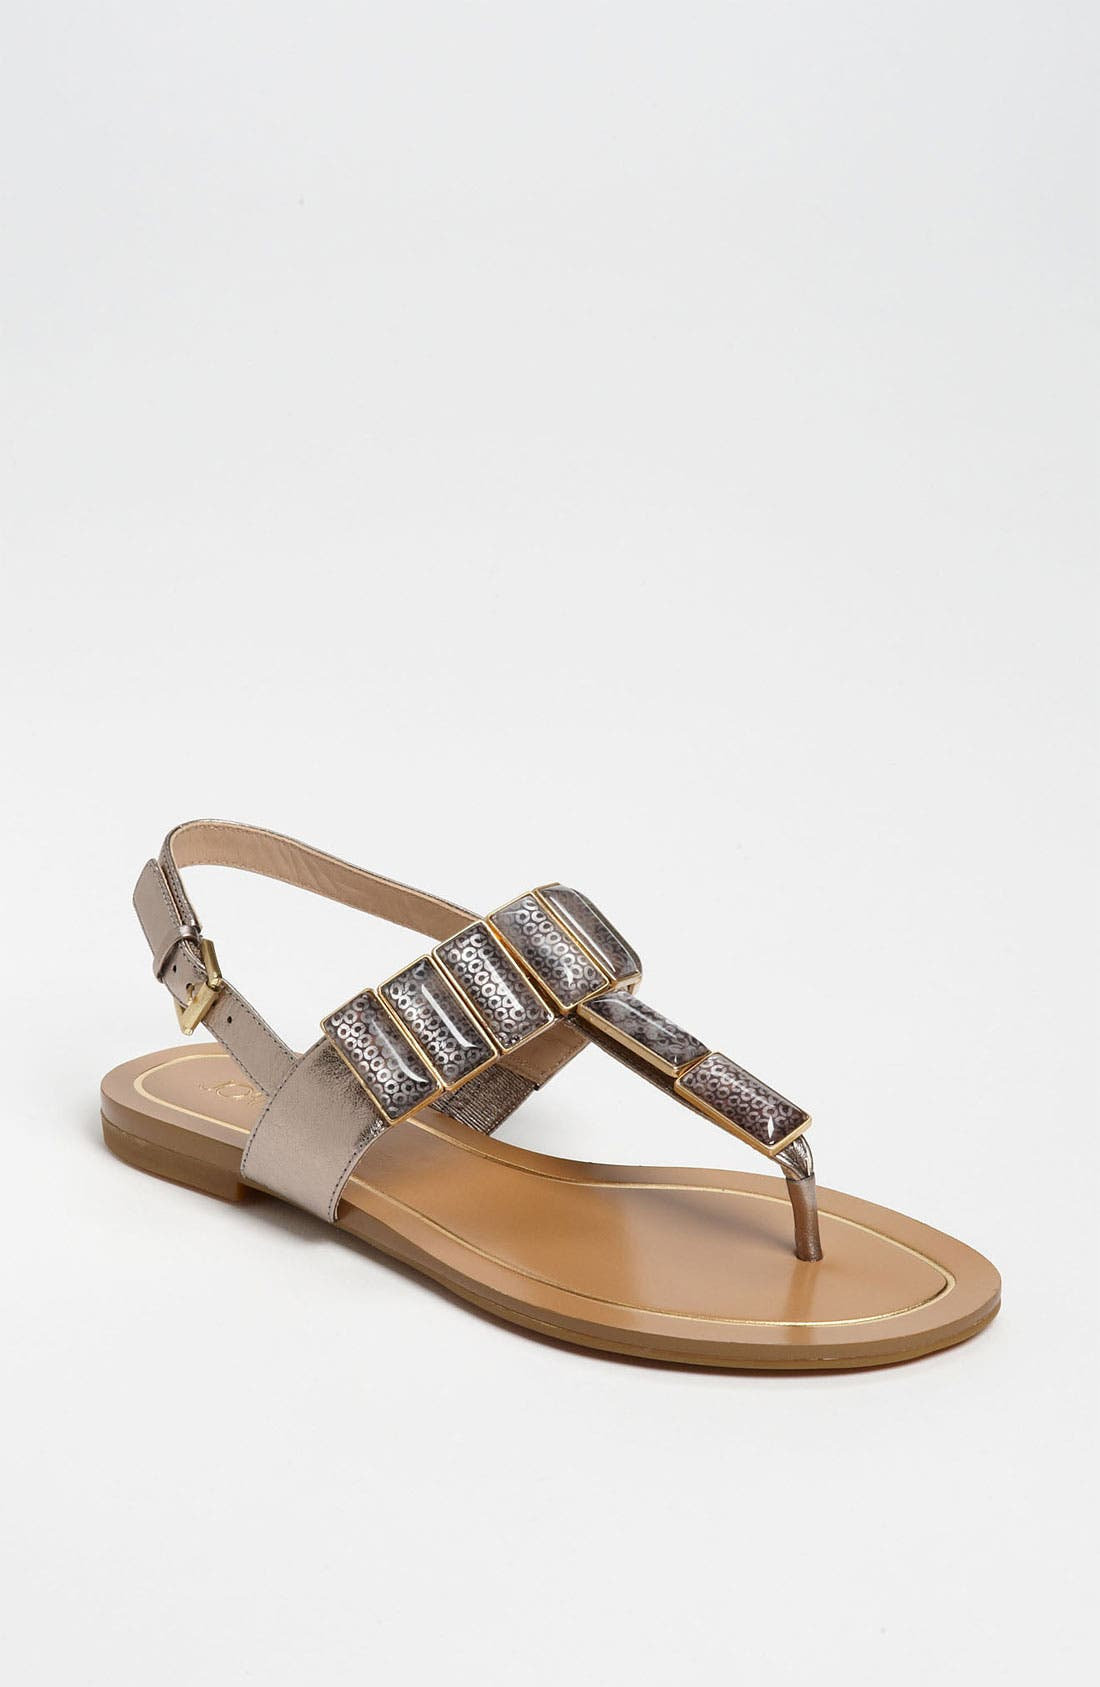 Main Image - Joan & David 'Kenlee' Sandal